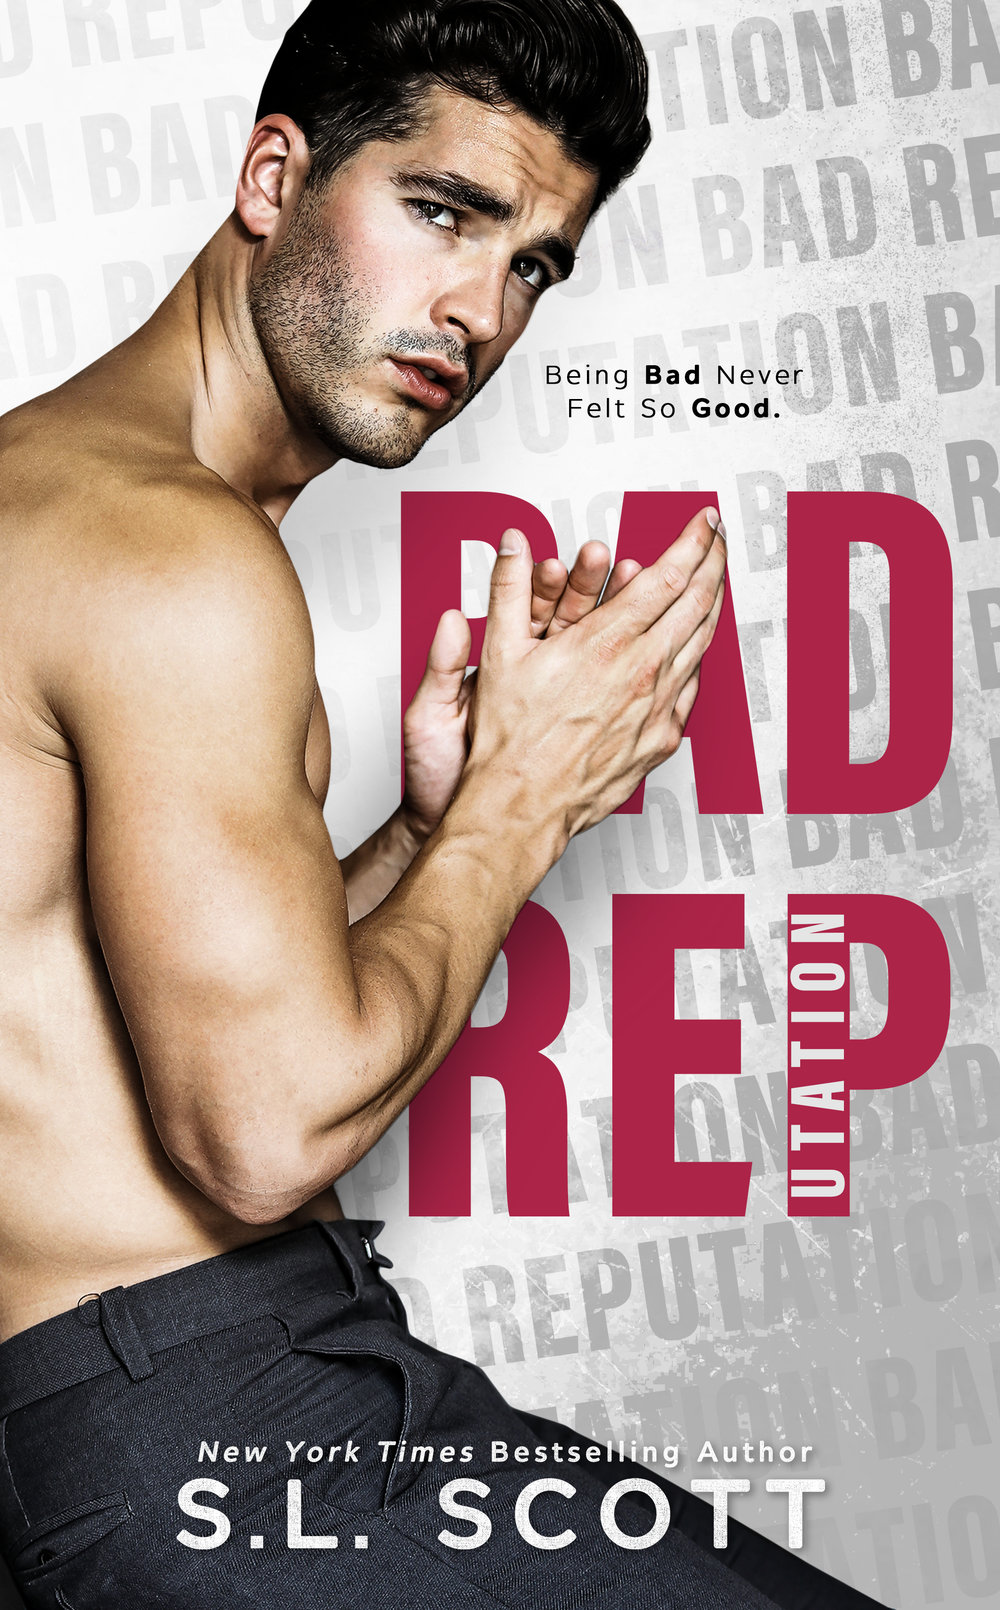 Bad Reputation by SL SCOTT Cover Reveal Ebook 1.jpeg